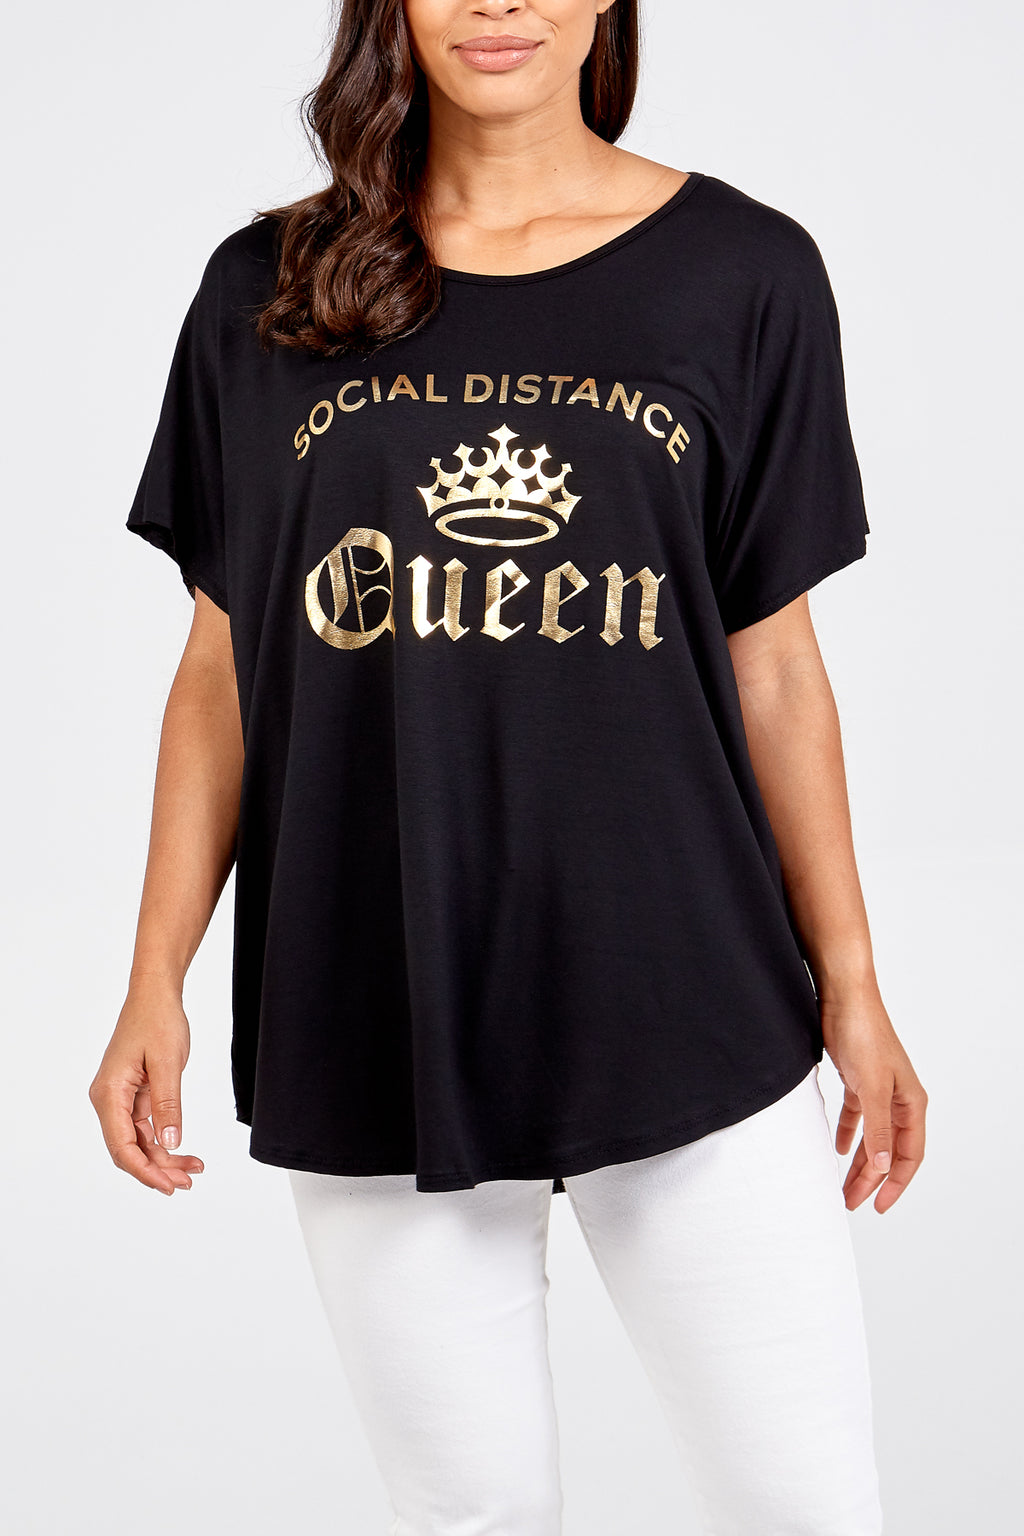 Social Distance Queen Gold Foil Top